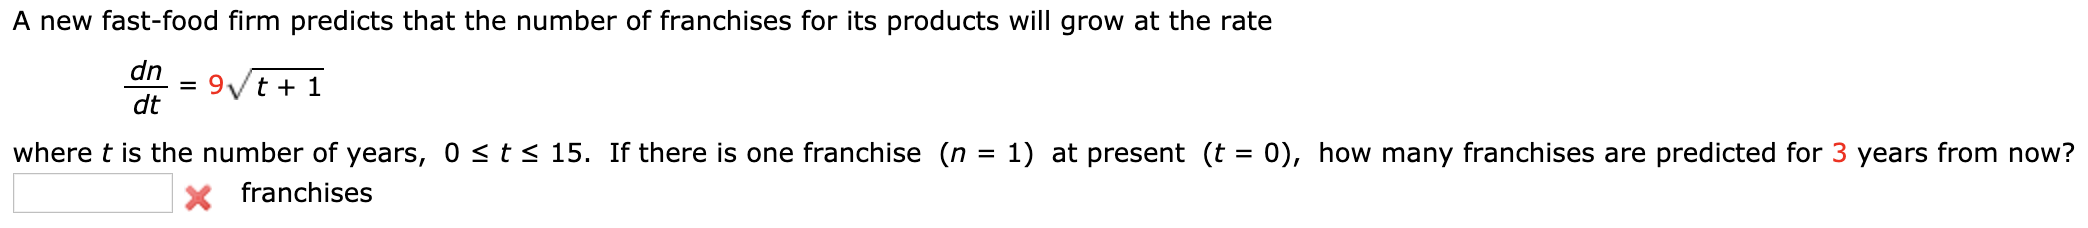 A new fast-food firm predicts that the number of franchises for its products will grow at the rate dn 9/t + 1 dt where t is the number of years, 0 <t<15. If there is one franchise (n = 1) at present (t = 0), how many franchises are predicted for 3 years from now? X franchises